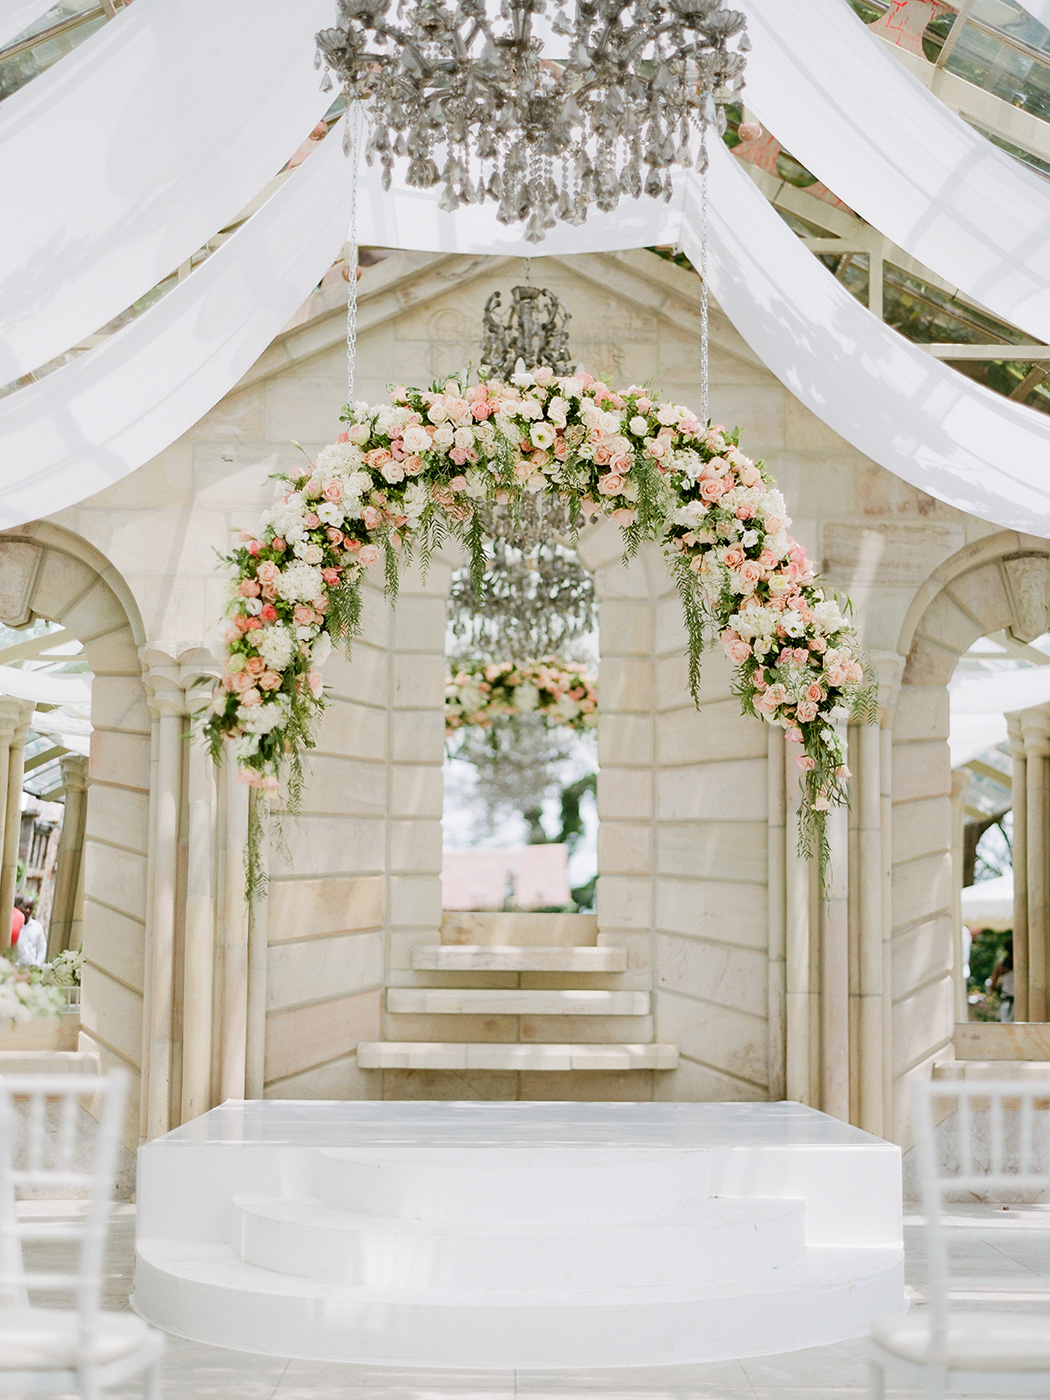 Floating Floral Arch | Rensche Mari Photography